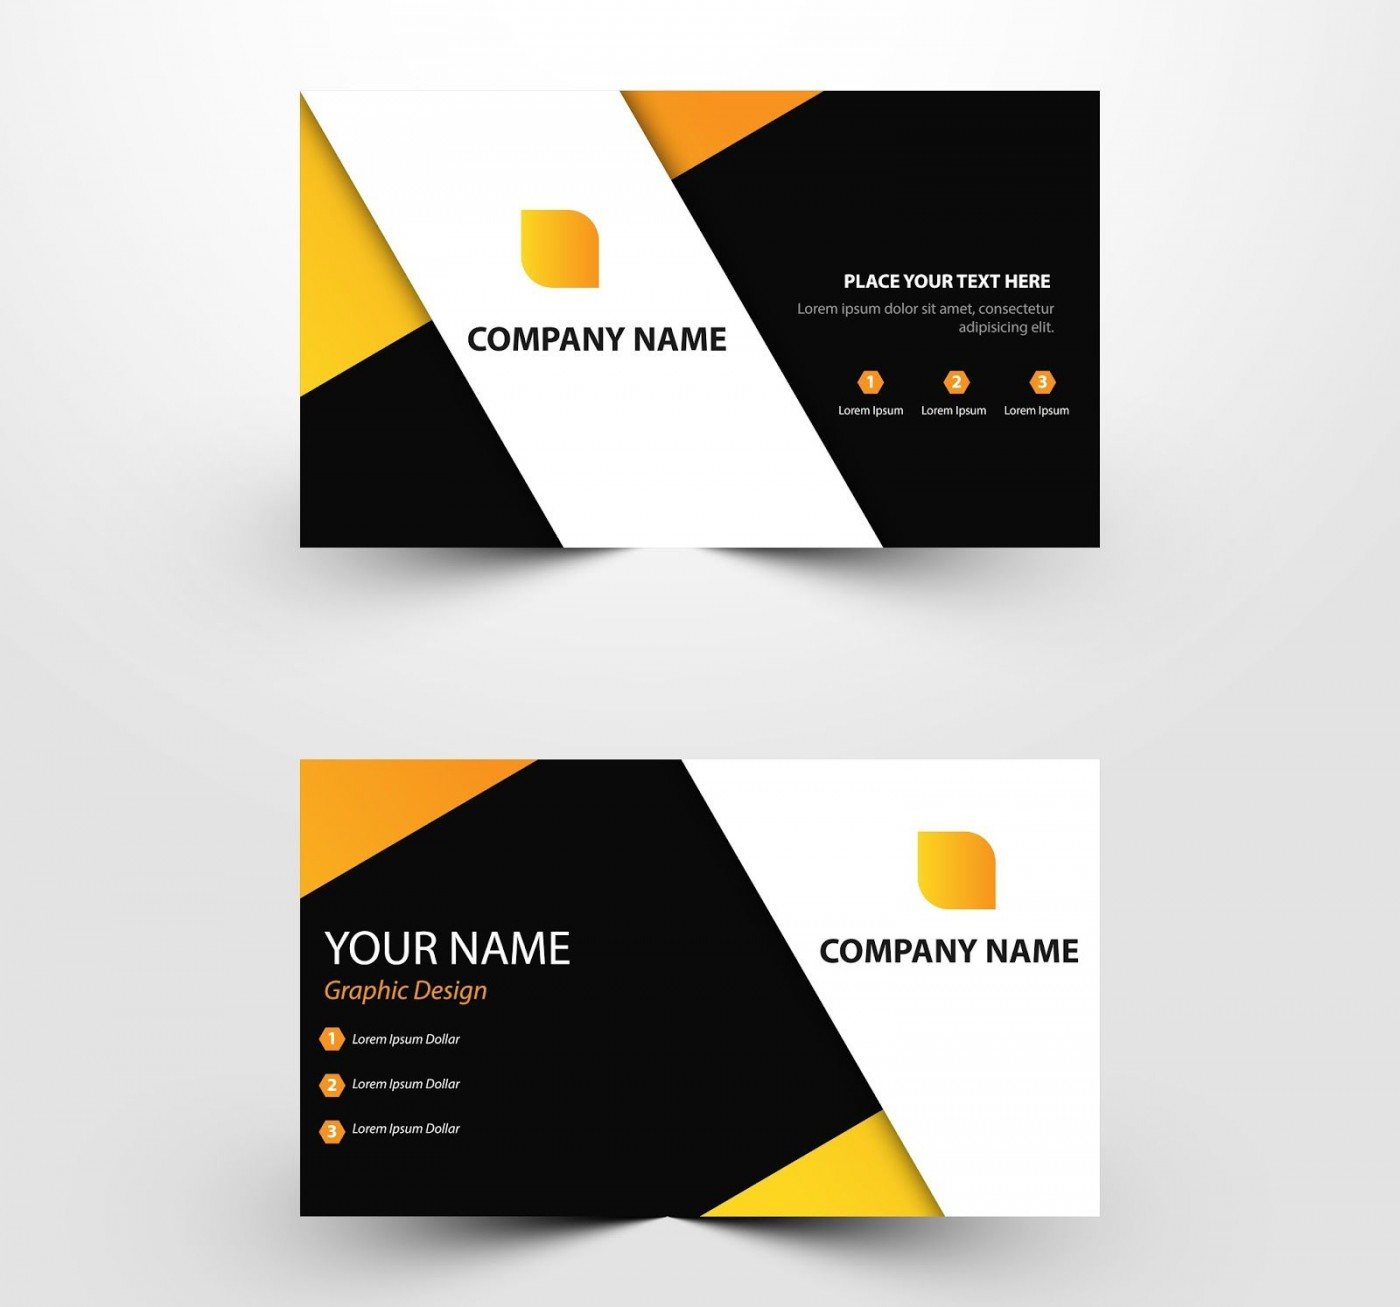 009 Fearsome Download Busines Card Template Concept  Free For Illustrator Visiting Layout Word 20101400